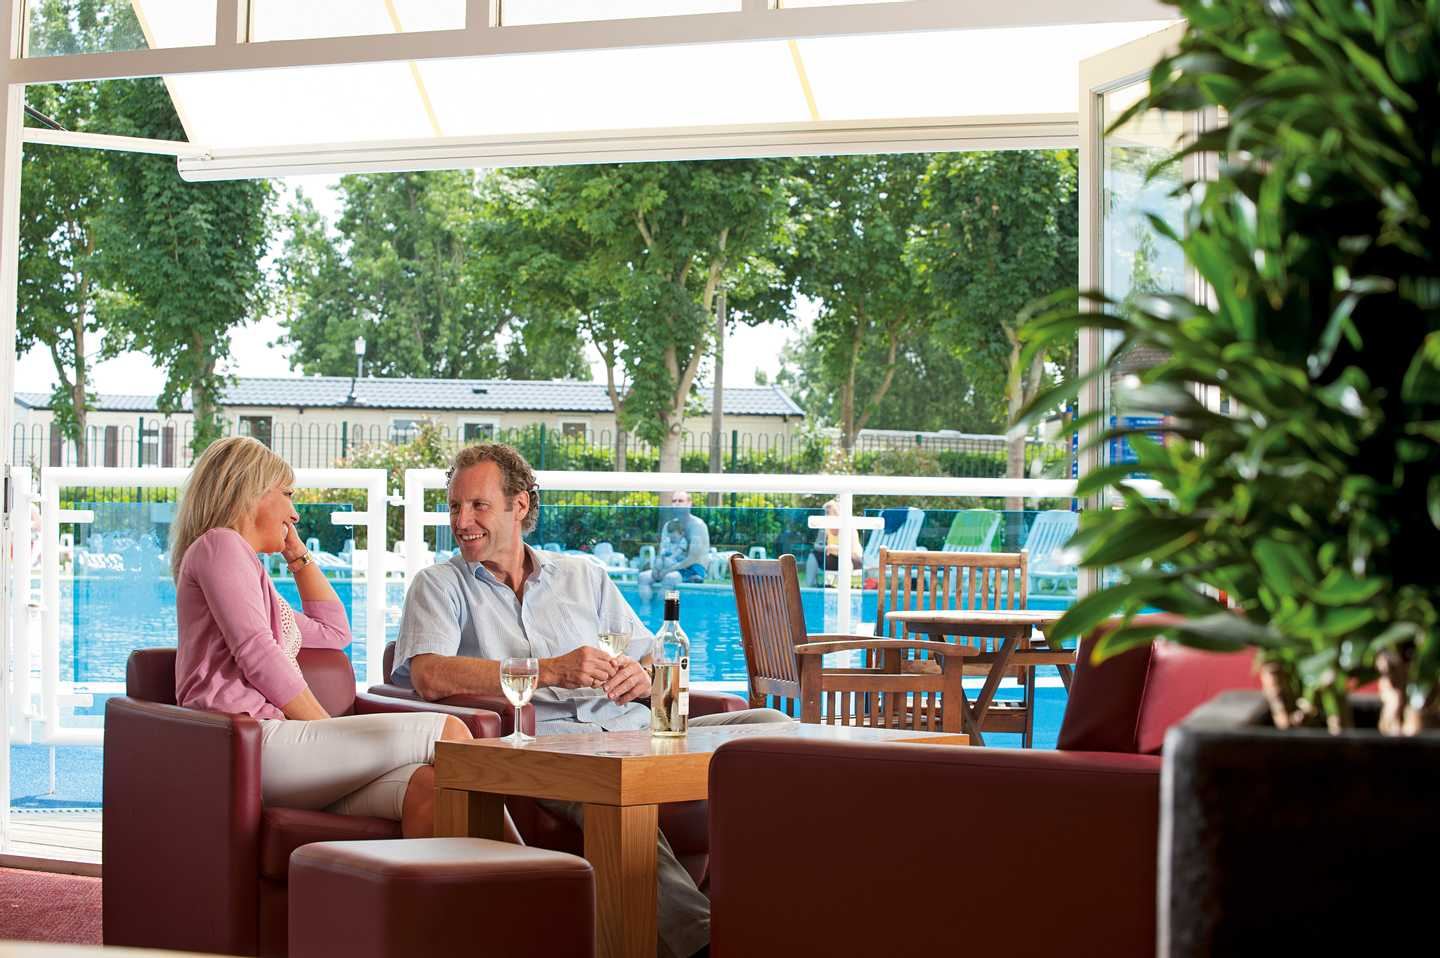 Guests enjoying a drink inside the Mash and Barrel overlooking the outdoor pool